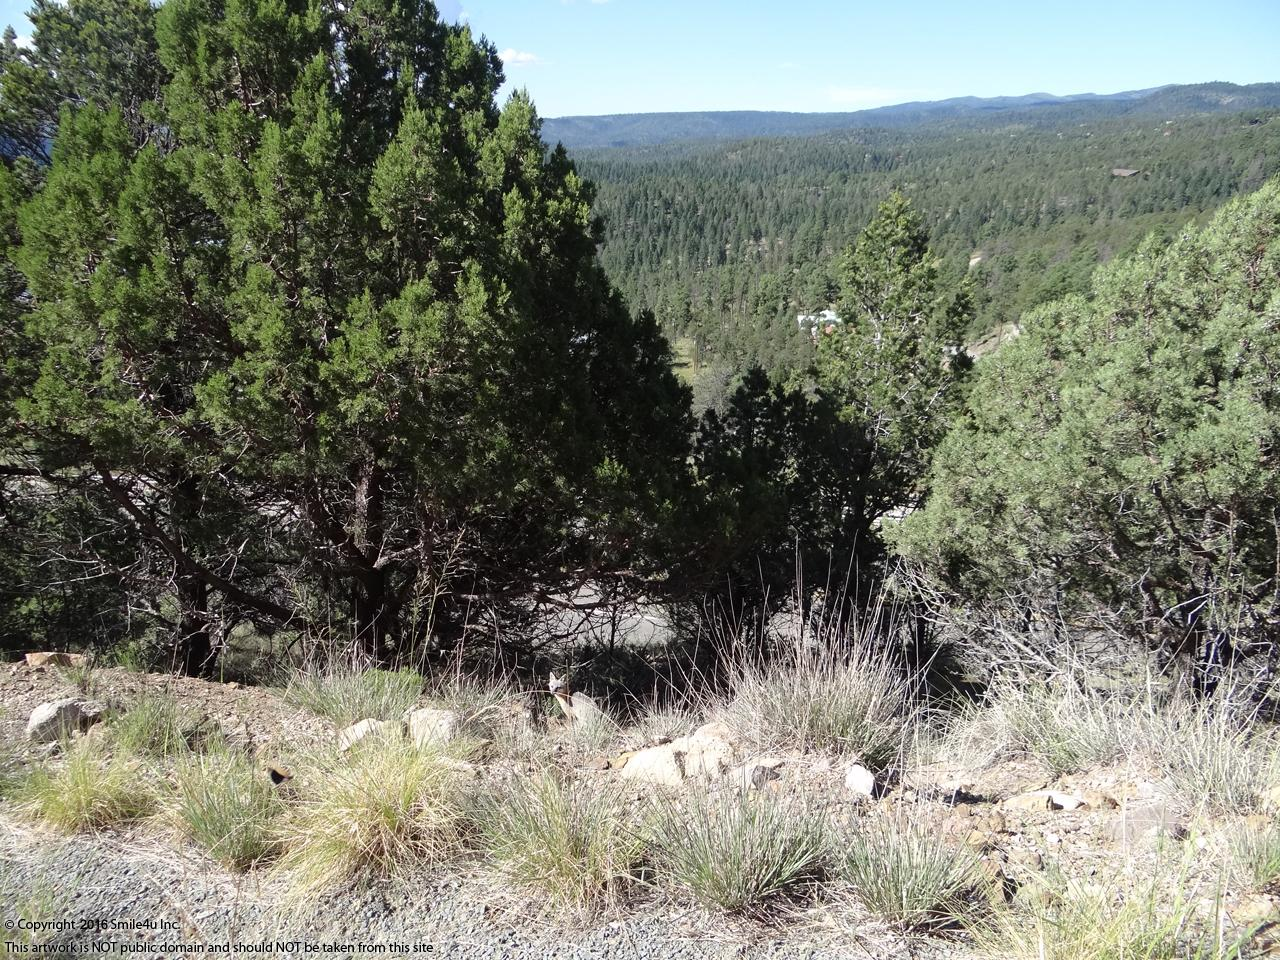 490063_watermarked_Ruidoso.JPG